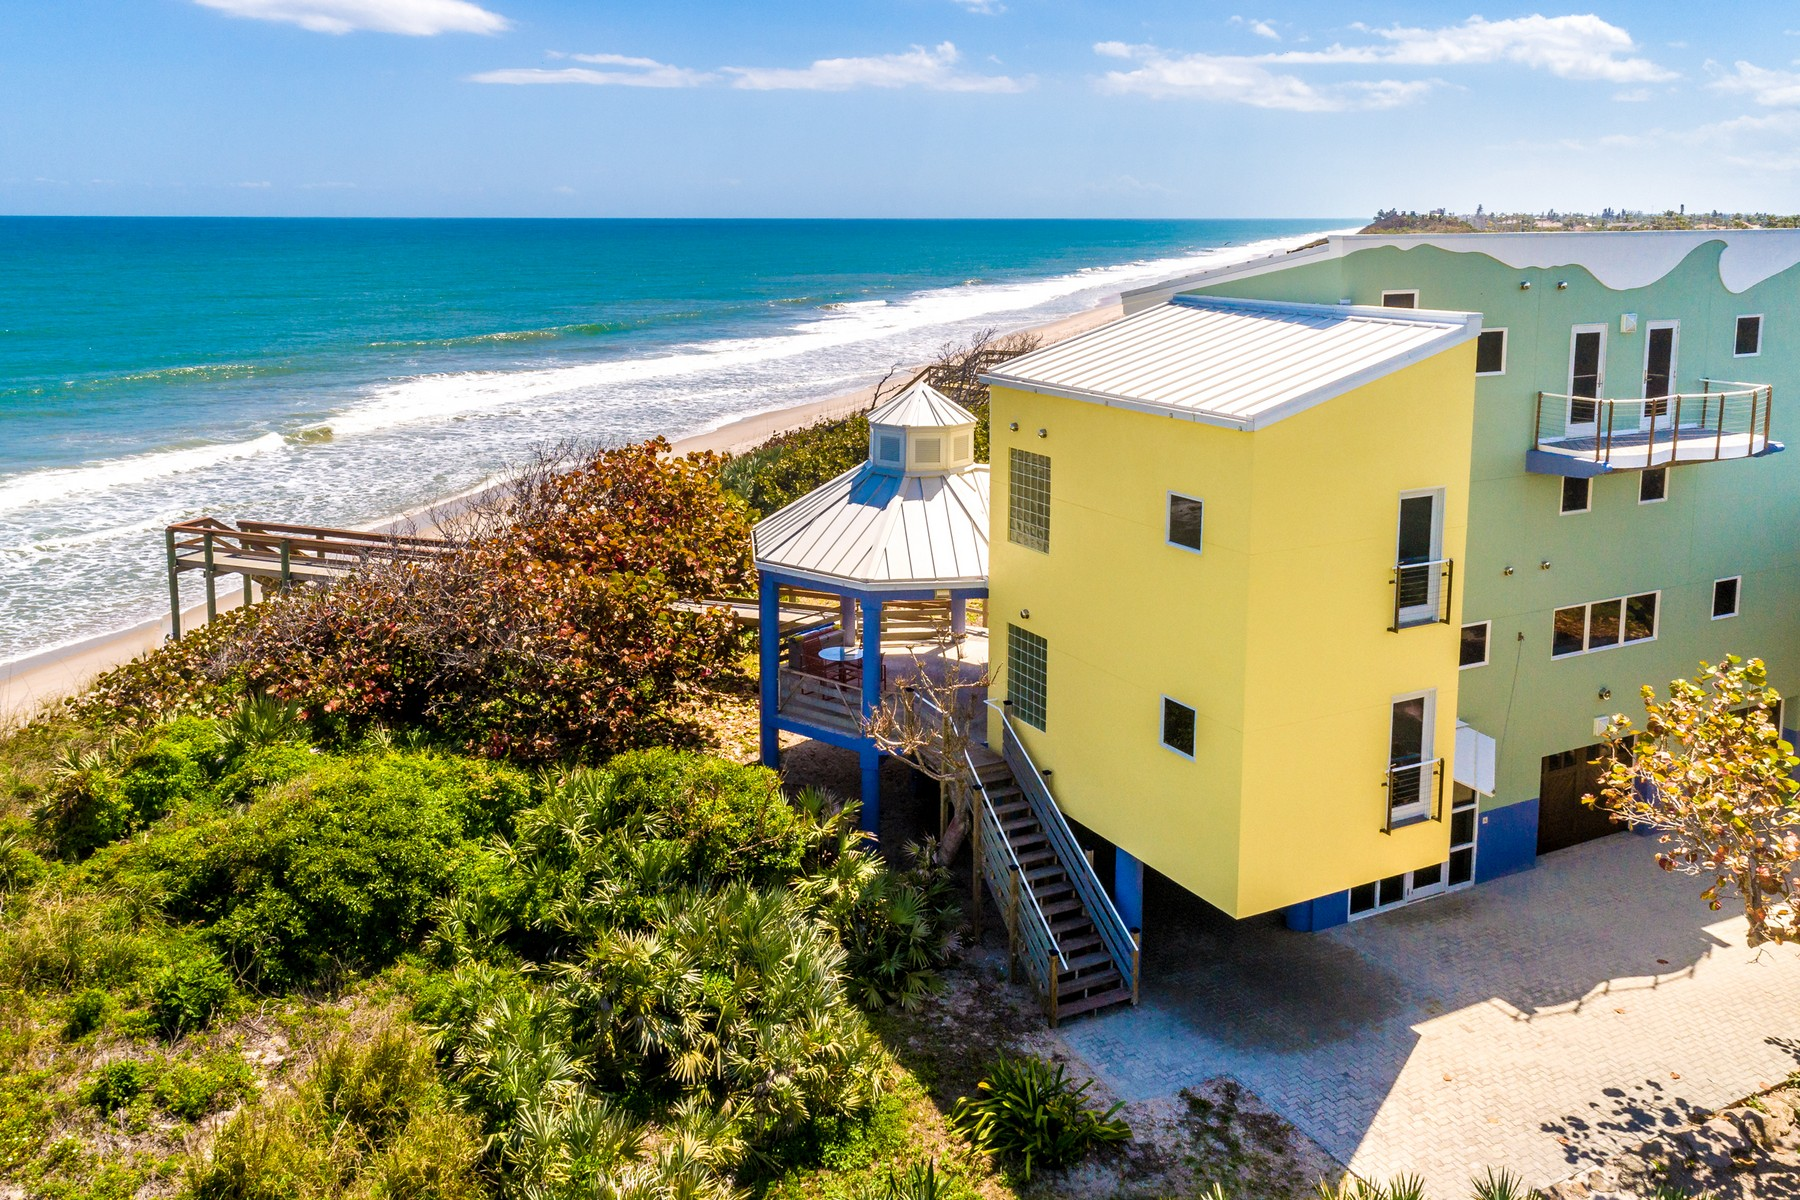 Single Family Homes for Sale at Spectacular Oceanfront Home Bordering Nature Preserve. 4515 Highway A1A Melbourne Beach, Florida 32951 United States